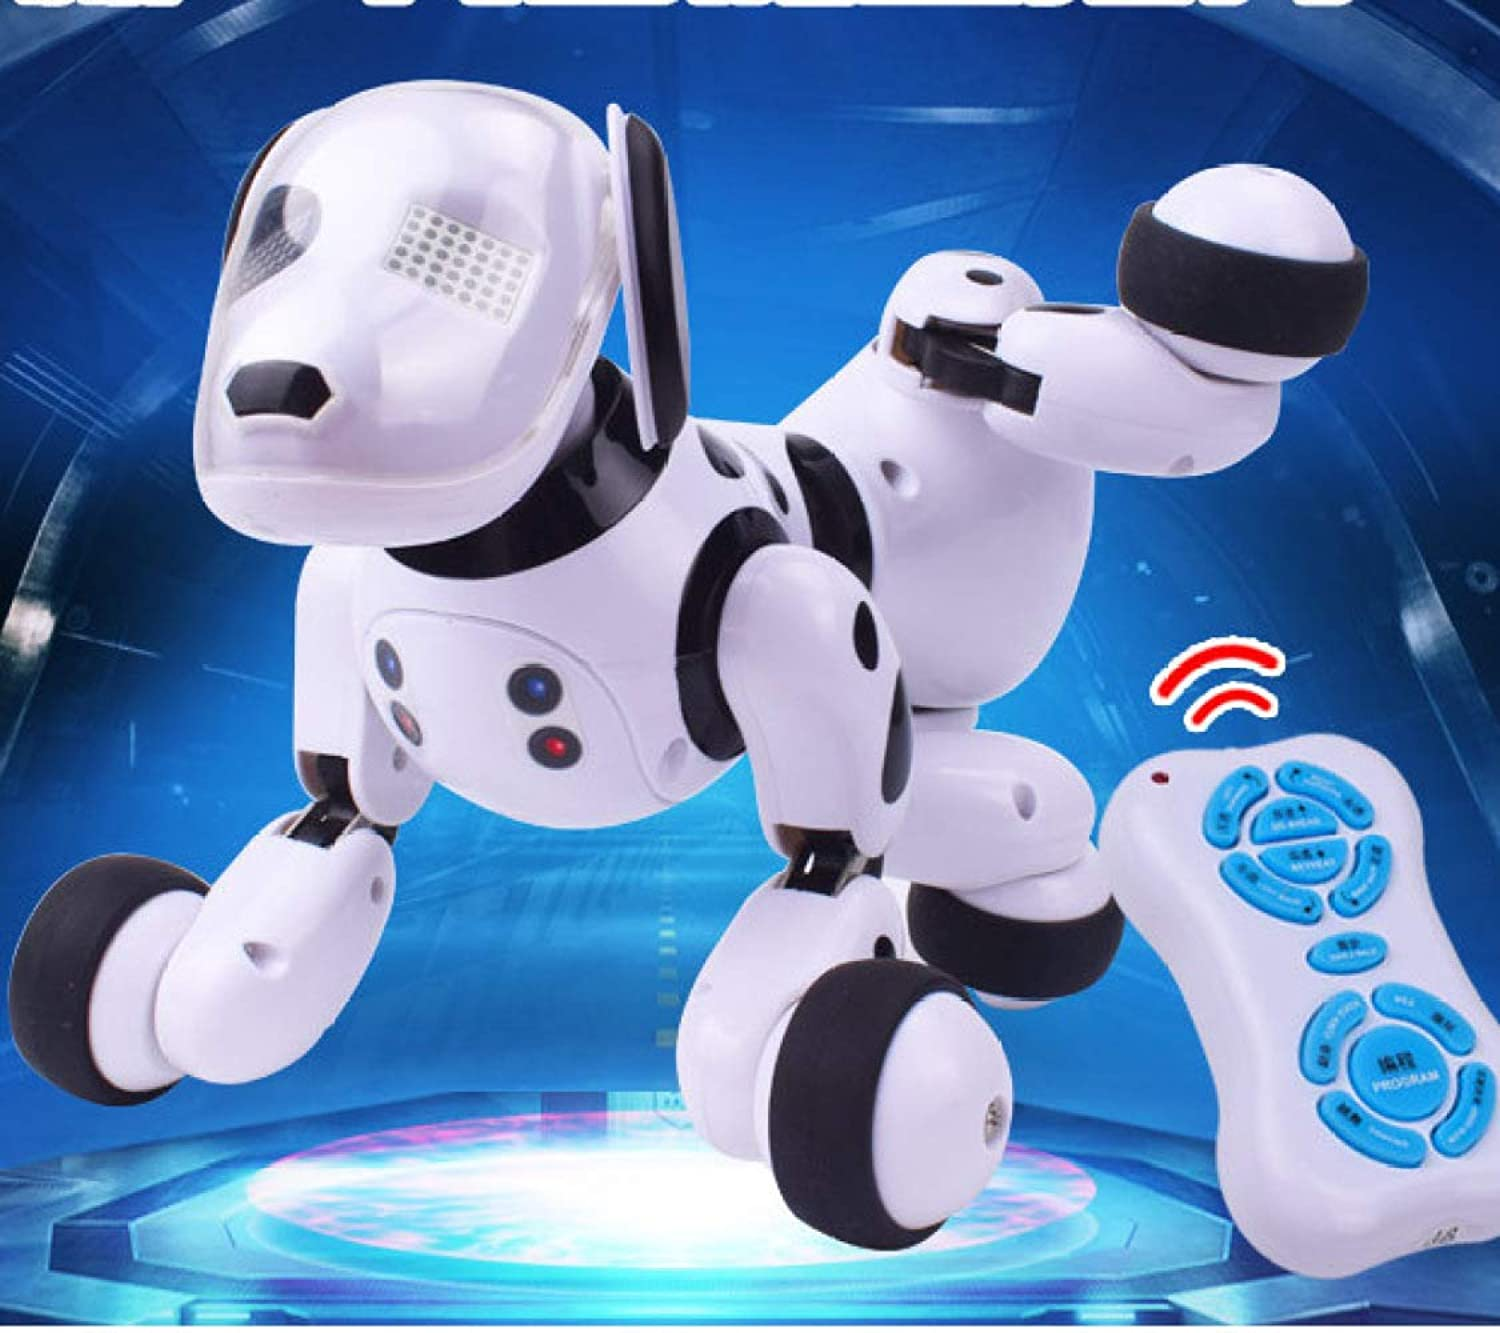 ZDY Smart Robot Dog,Electronic Pet Dog,Programmable,Dancing Music,Responds To Touch Chasing Interactive Fun Activities26  15  18cm 10.2  6  7.1 Inches,Newversion